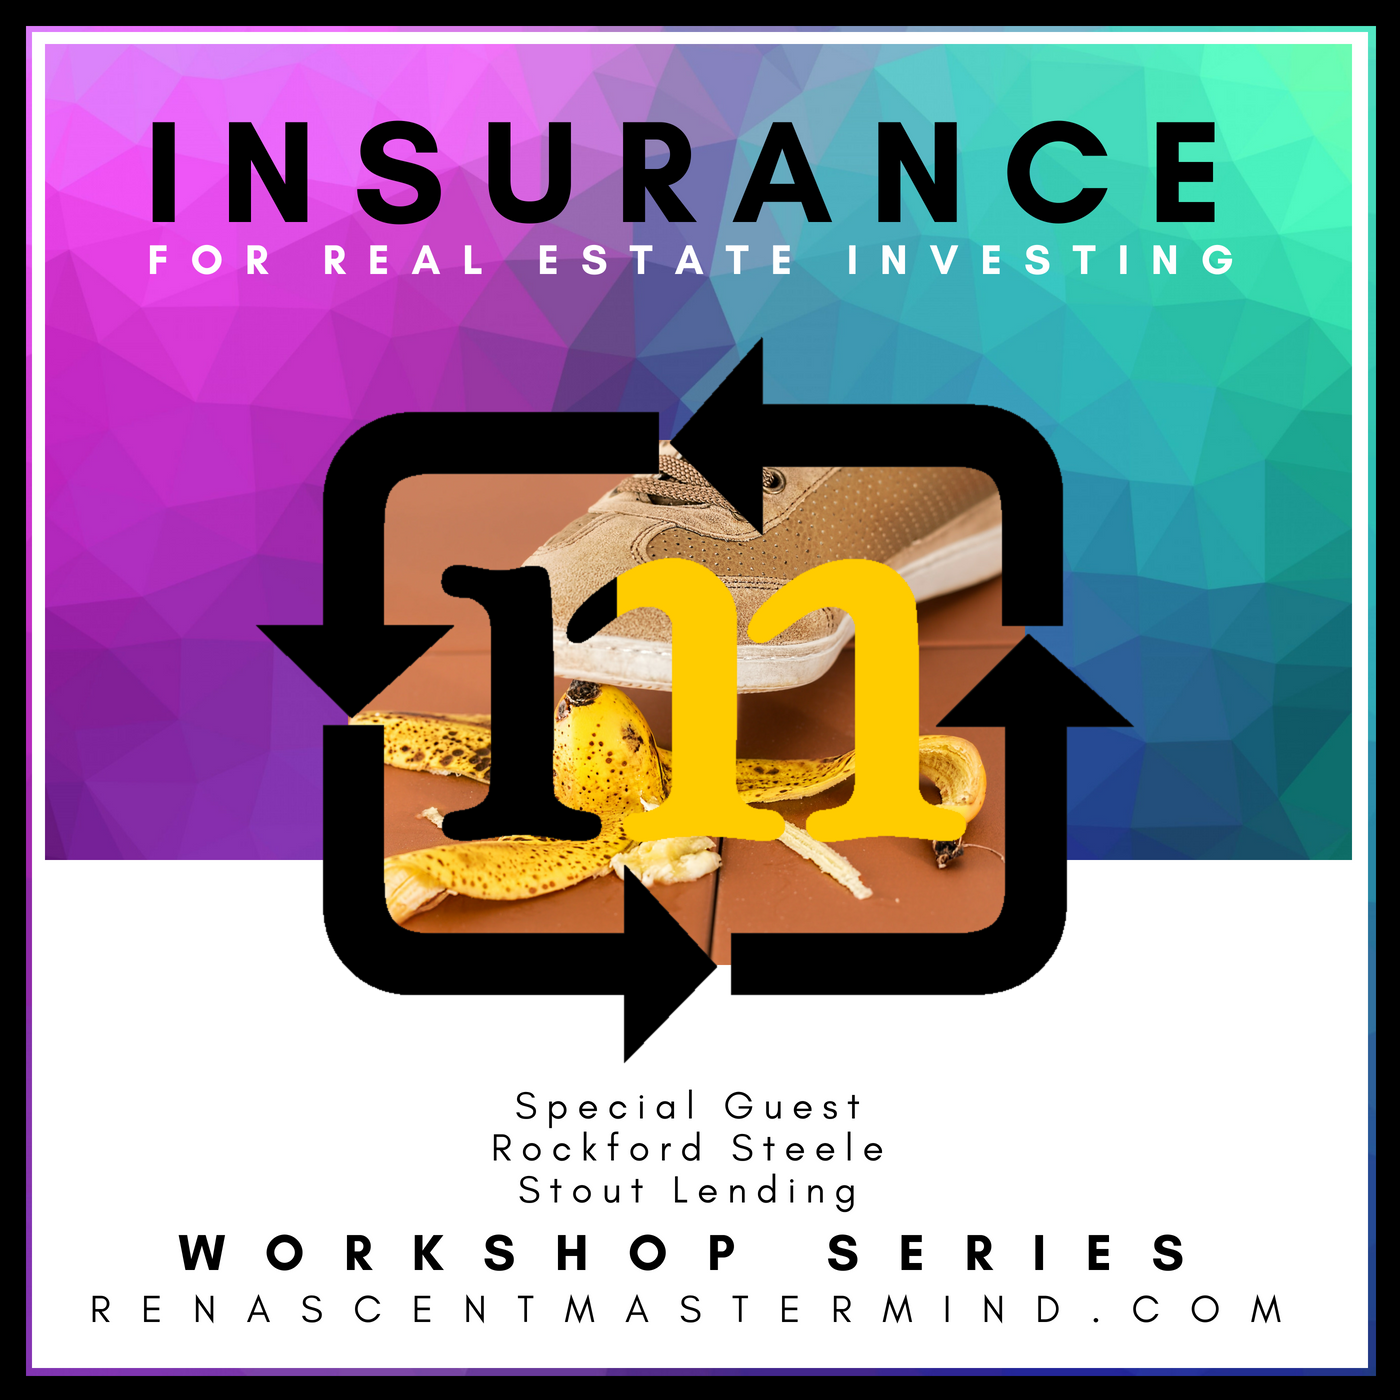 Copy of OKC Real Estate Investors with Renascent Mastermind Presents: Insurance for Real Estate Investing | Workshop Series with special guest expert Rockford Steele with Stout Lending